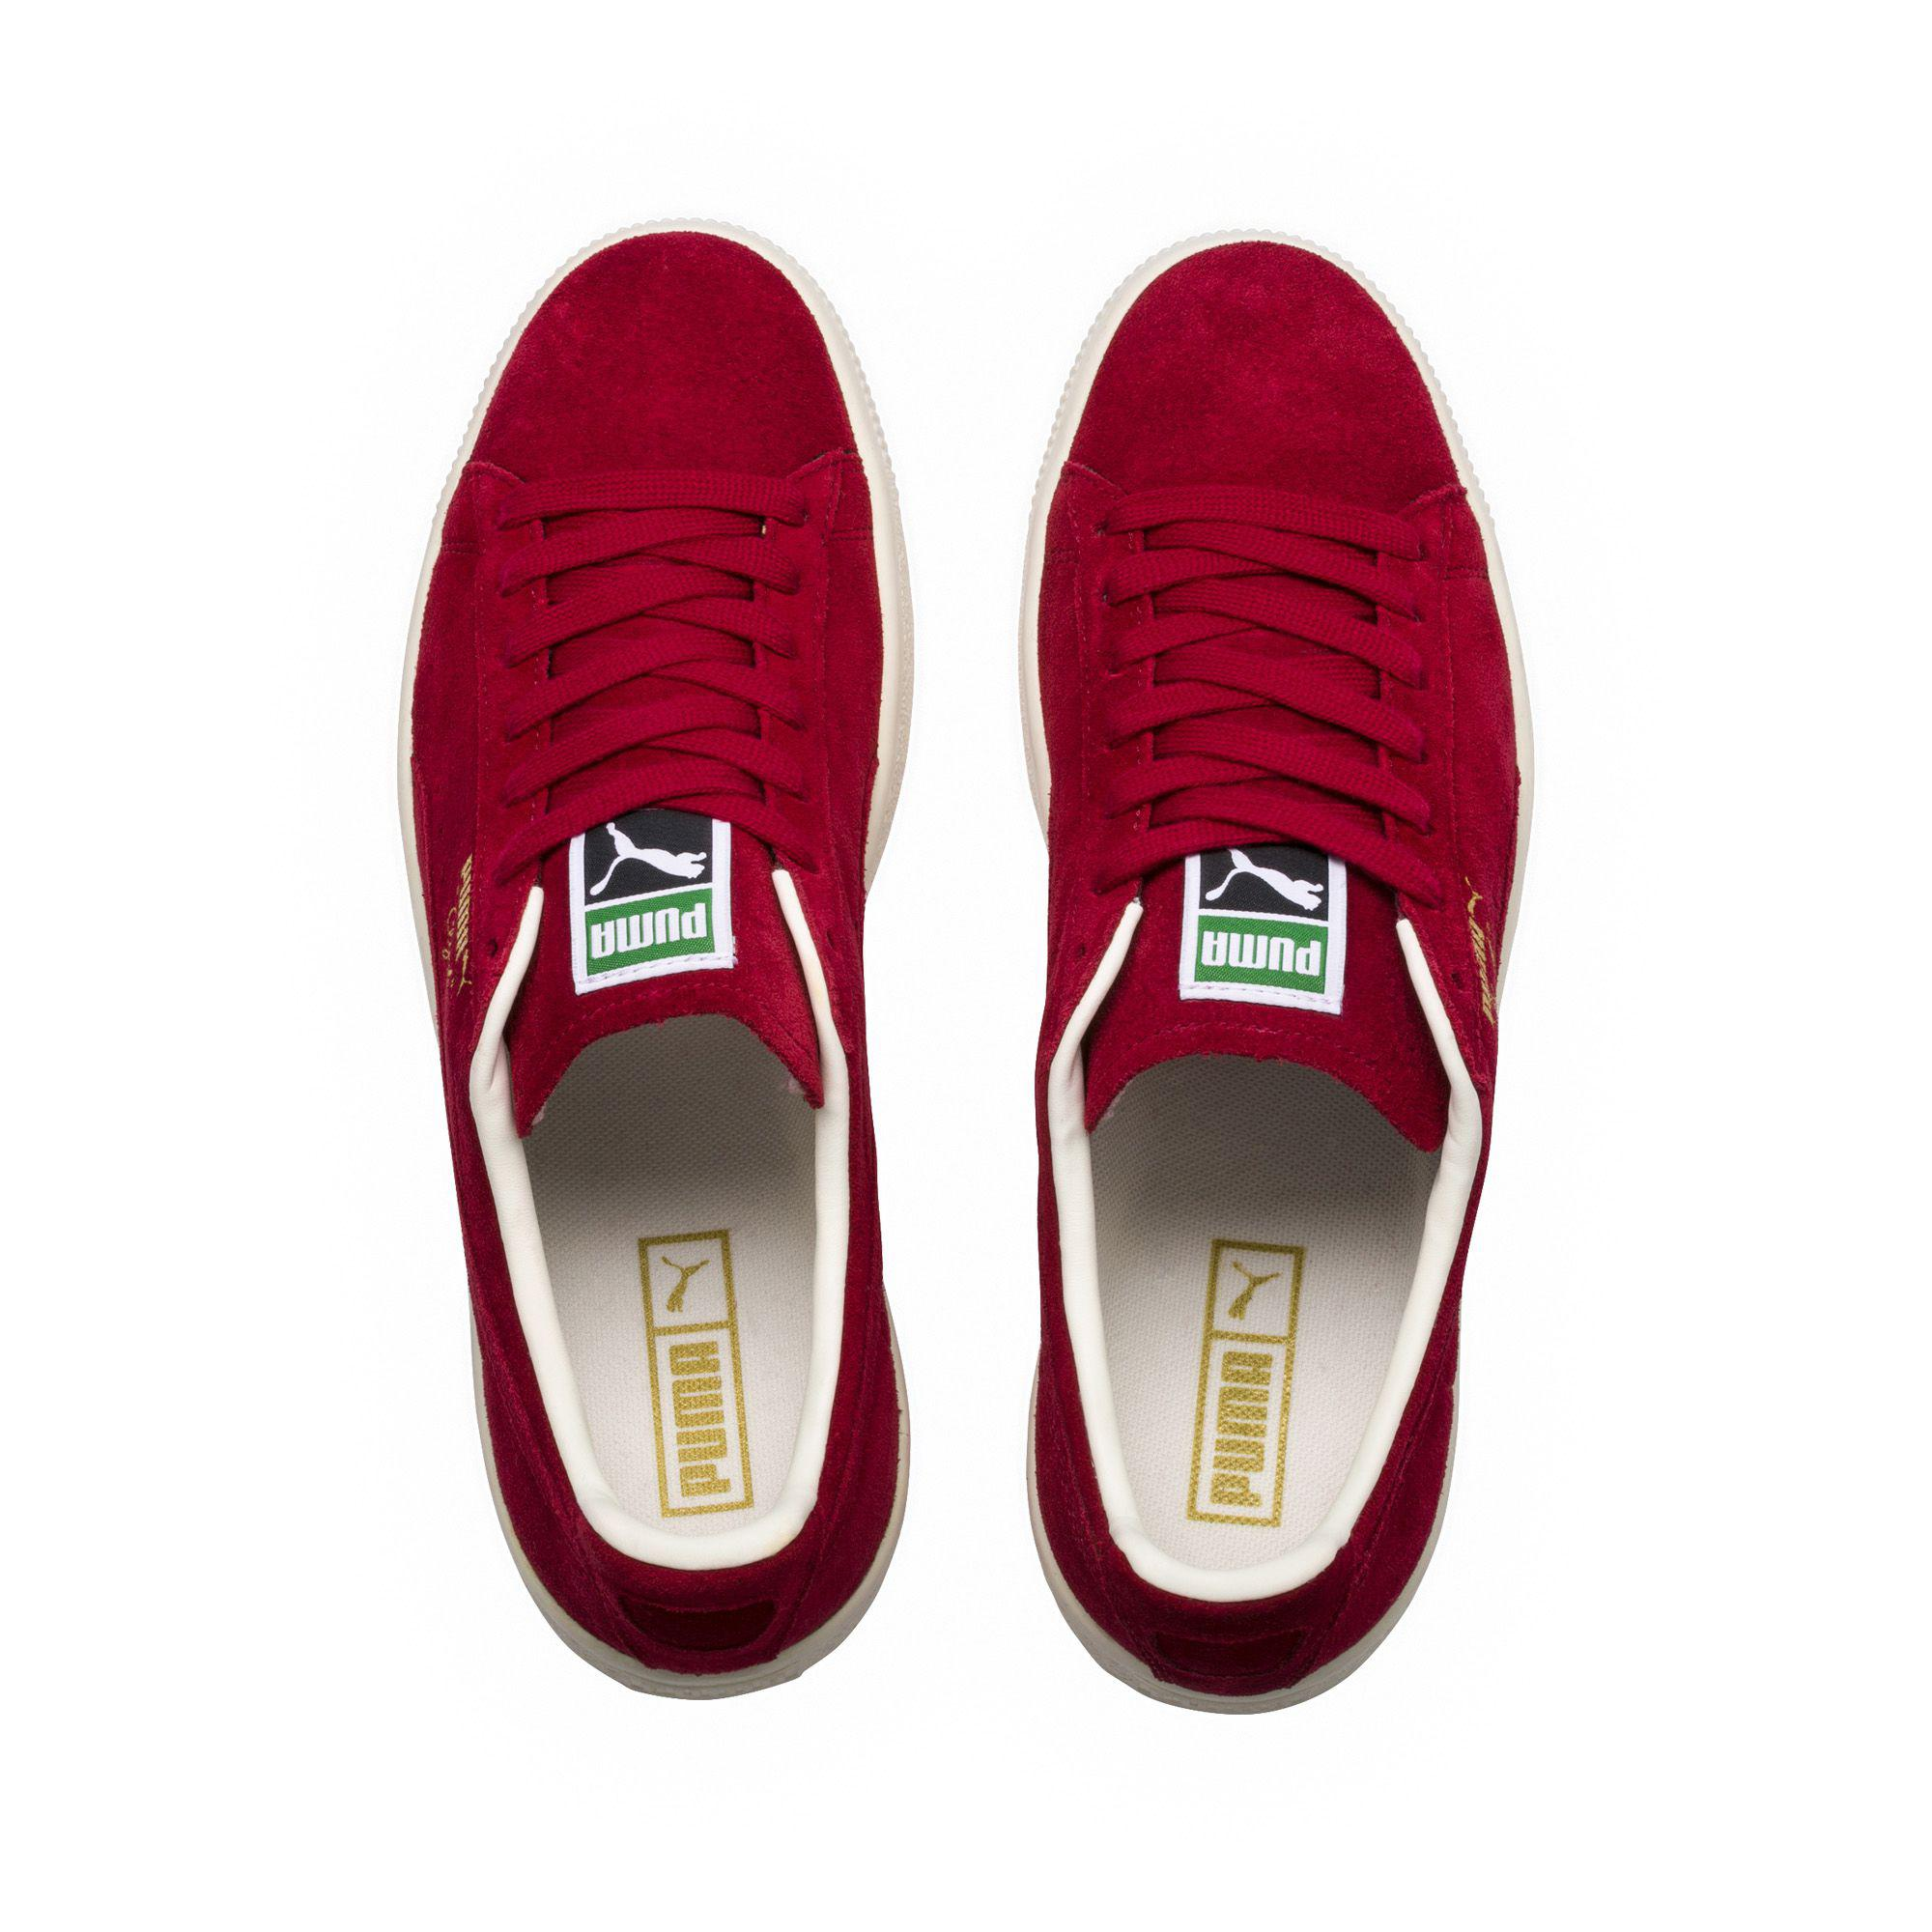 3f0d2213d63 Lyst - PUMA Clyde From The Archive Sneakers in Red for Men